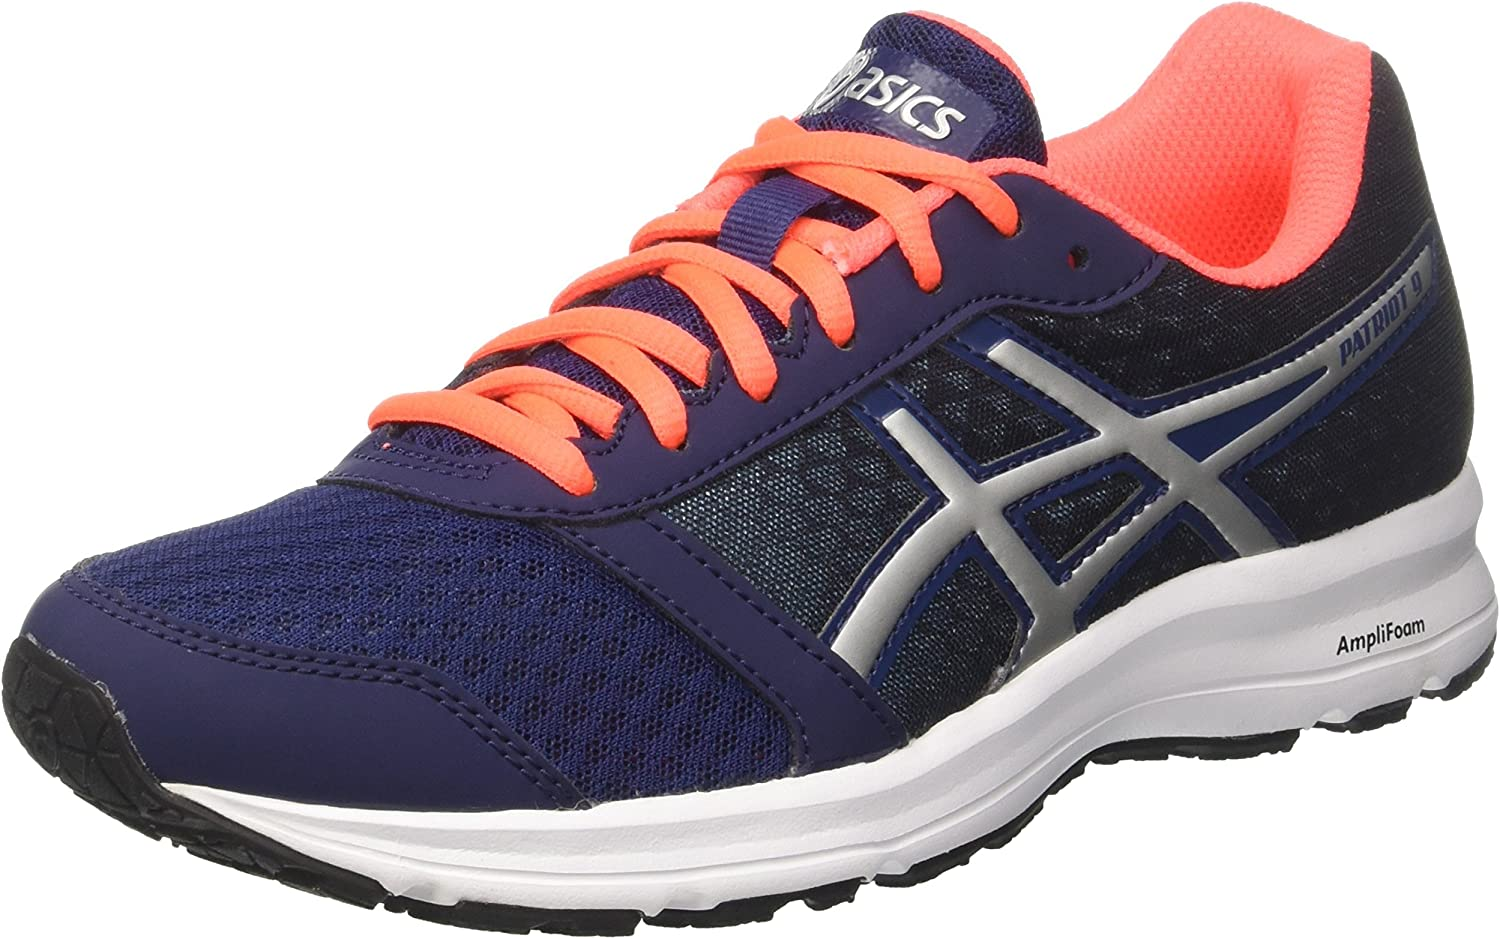 Asics Patriot 9, Zapatillas de Entrenamiento para Hombre, Multicolor (Indigo Blue/Silver/Flash Coral 4993), 39.5 EU: Amazon.es: Zapatos y complementos